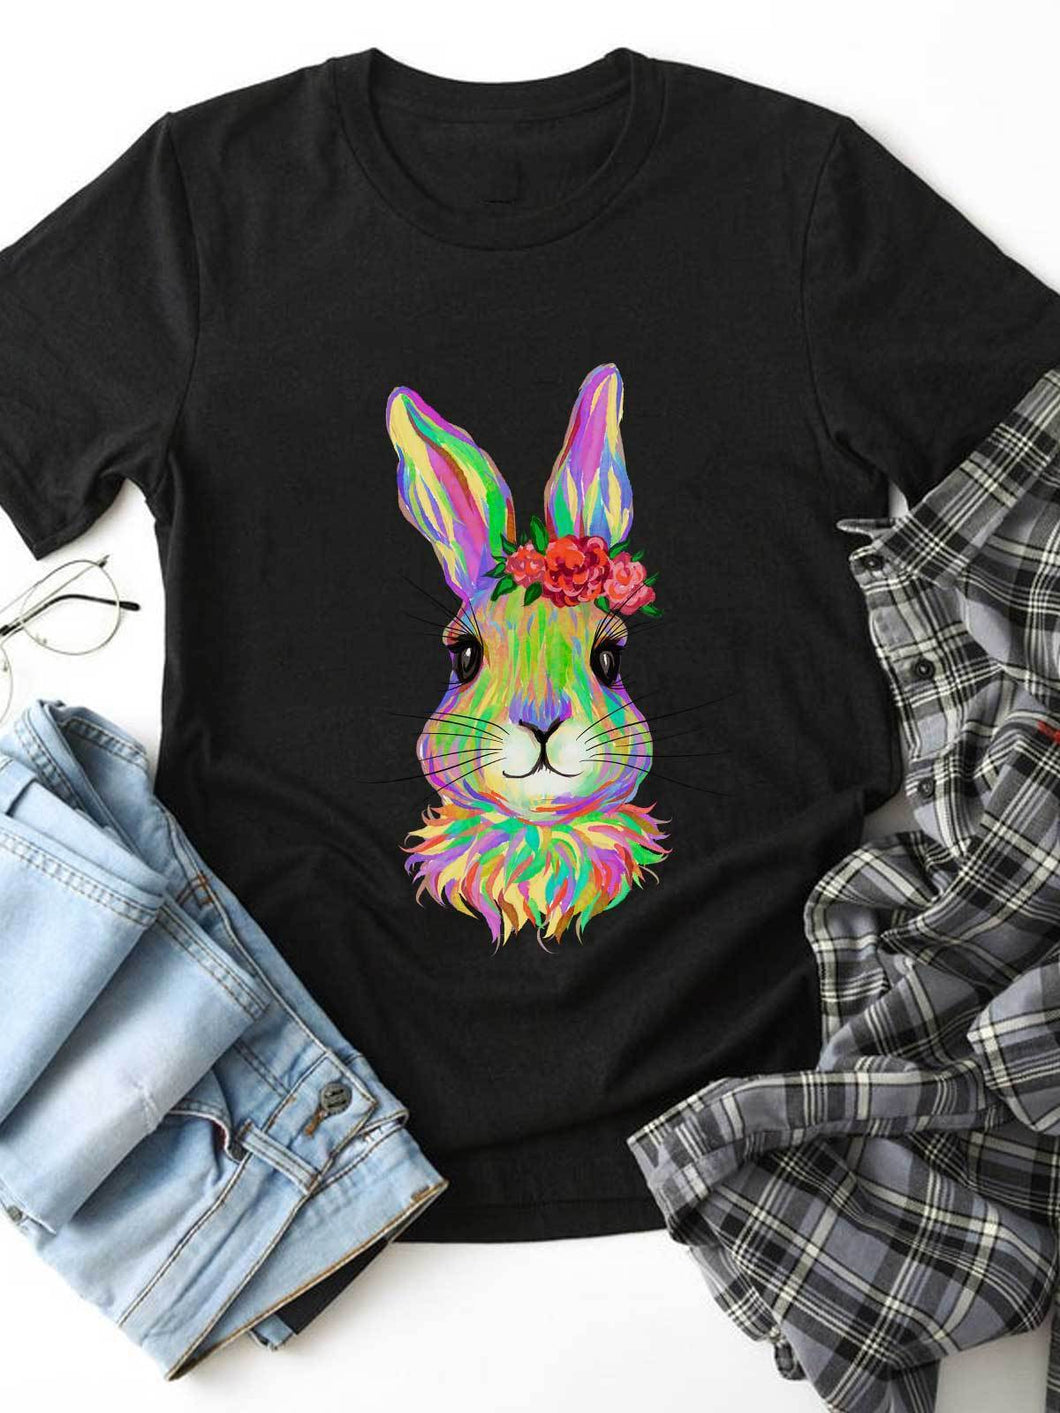 Colorful Watercolored Bunny With Flowers On Head Black Tee